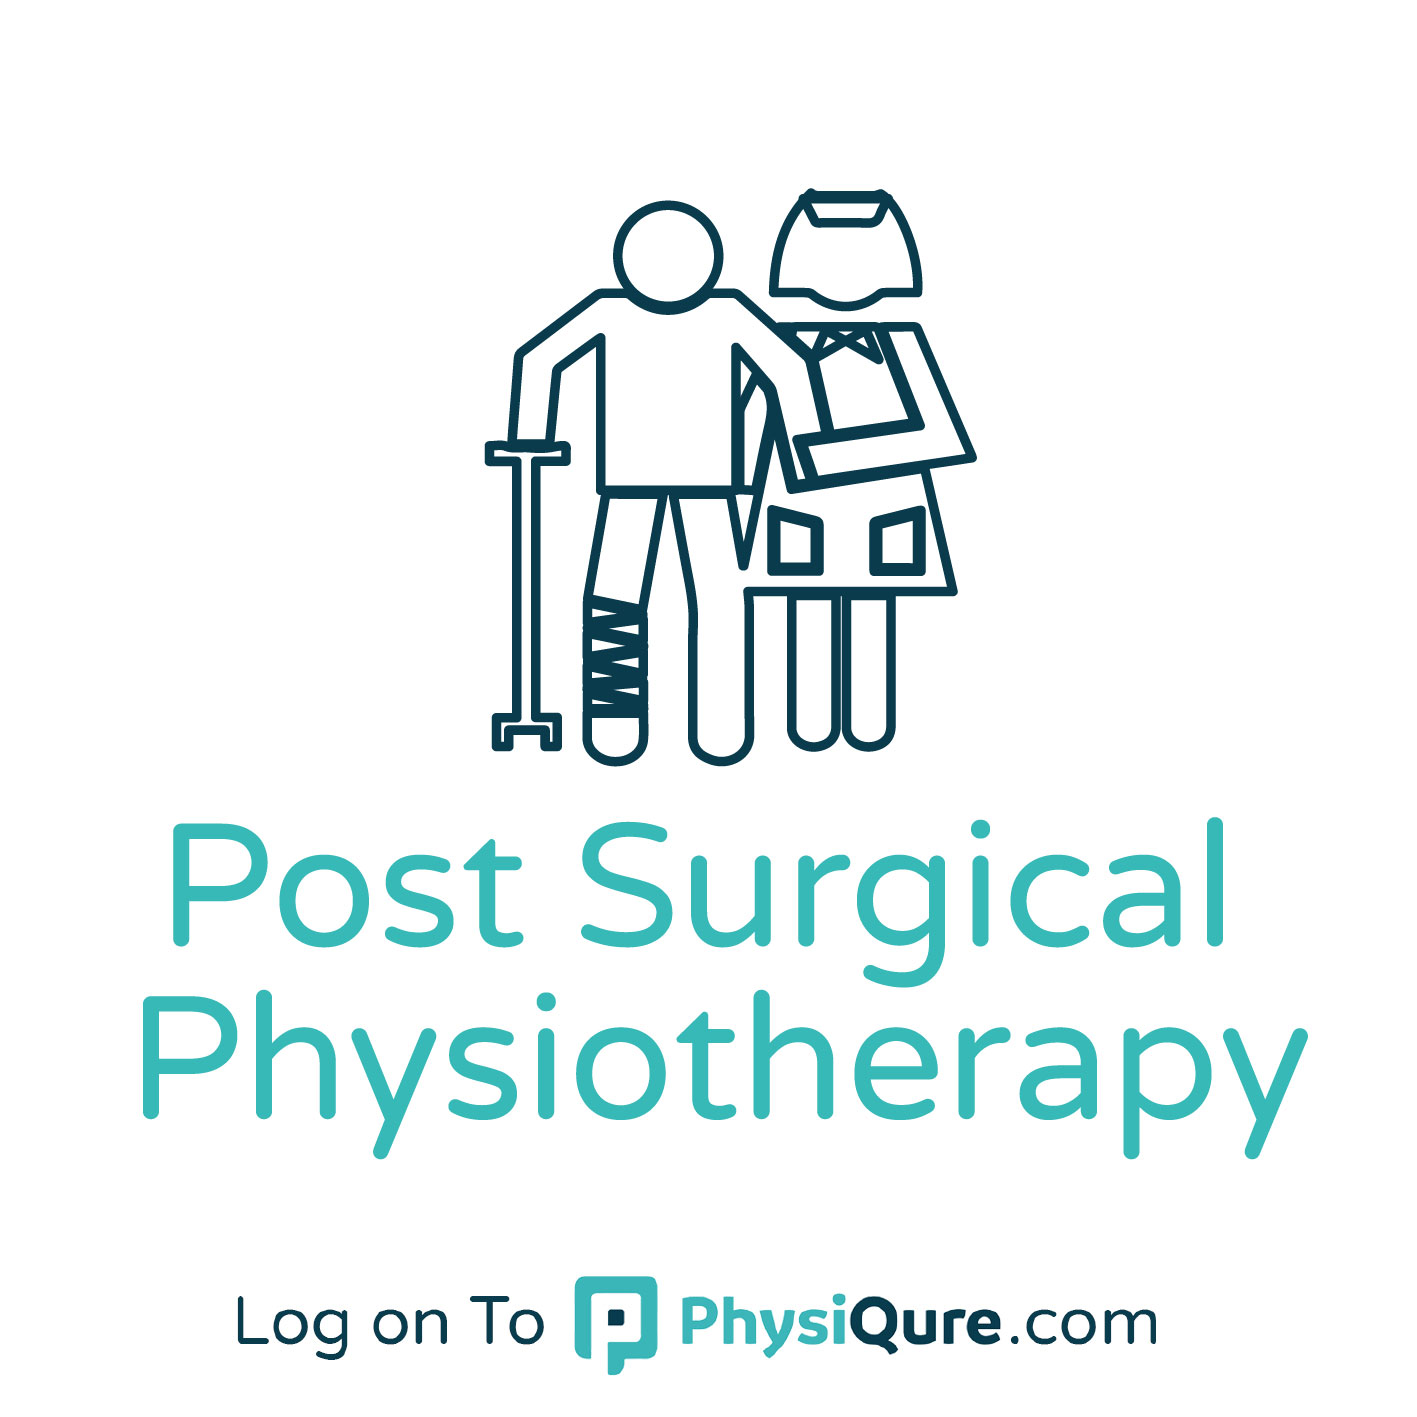 Post Surgical Physiotherapy bhopal